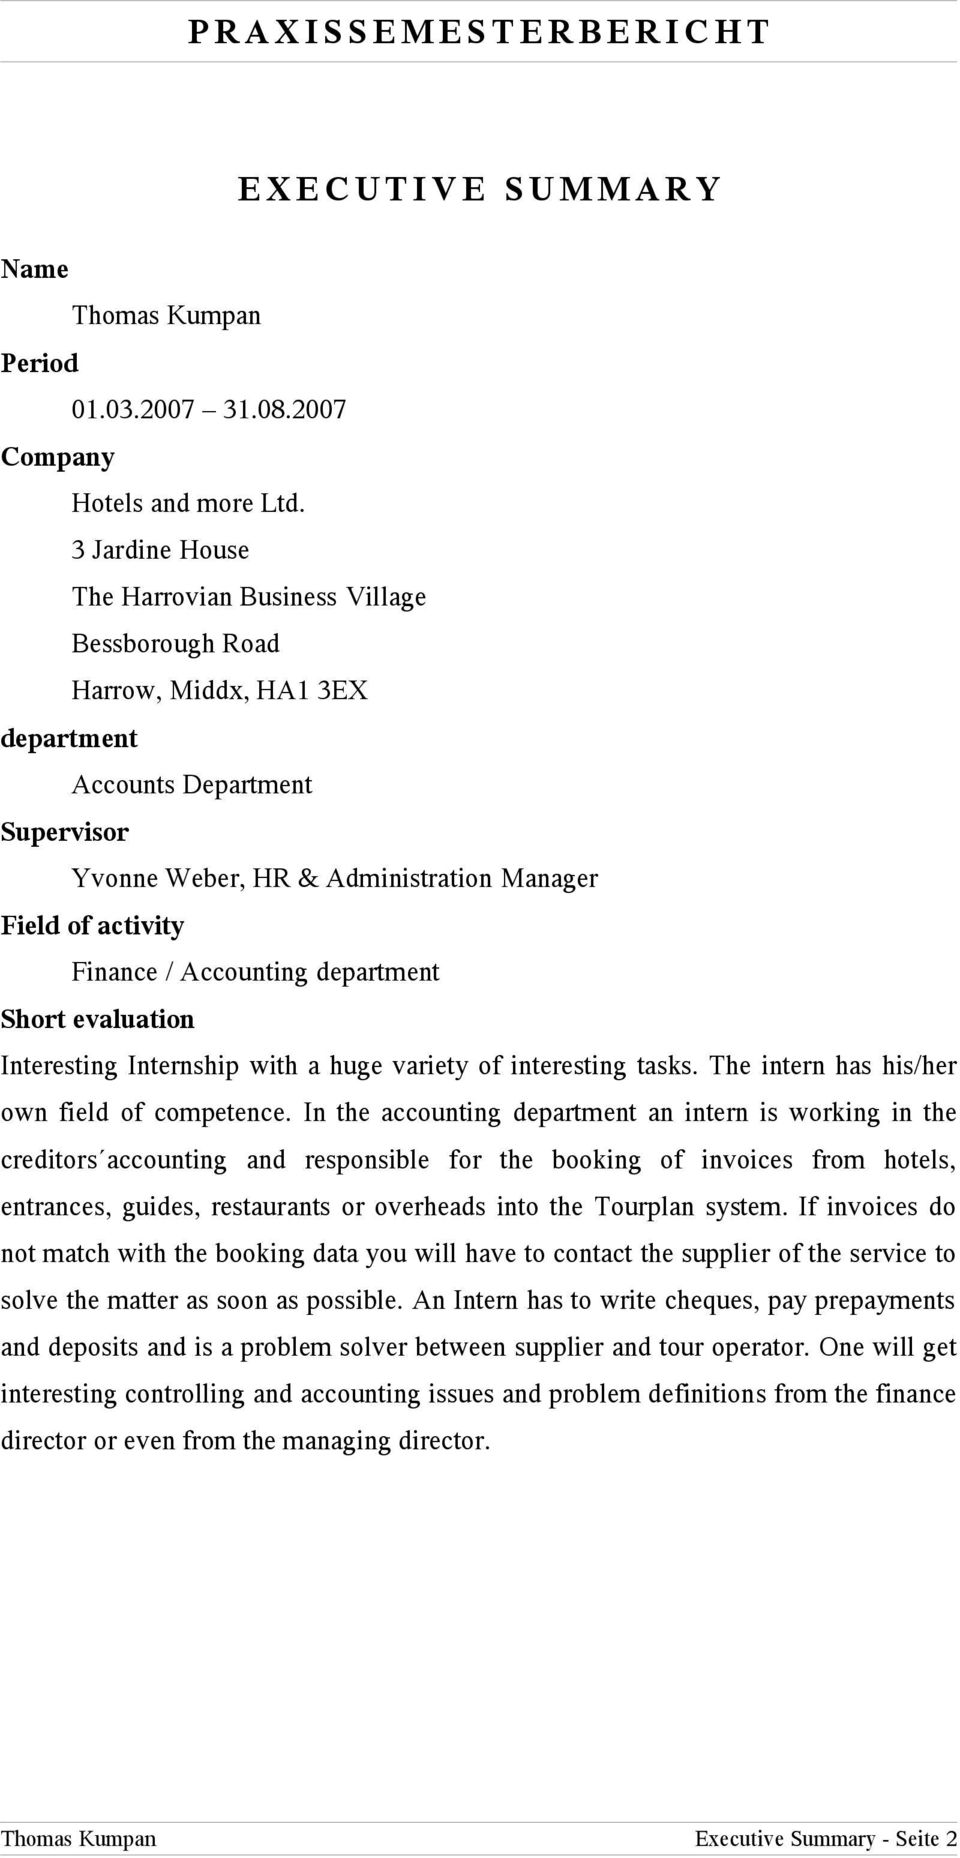 Accounting department Short evaluation Interesting Internship with a huge variety of interesting tasks. The intern has his/her own field of competence.